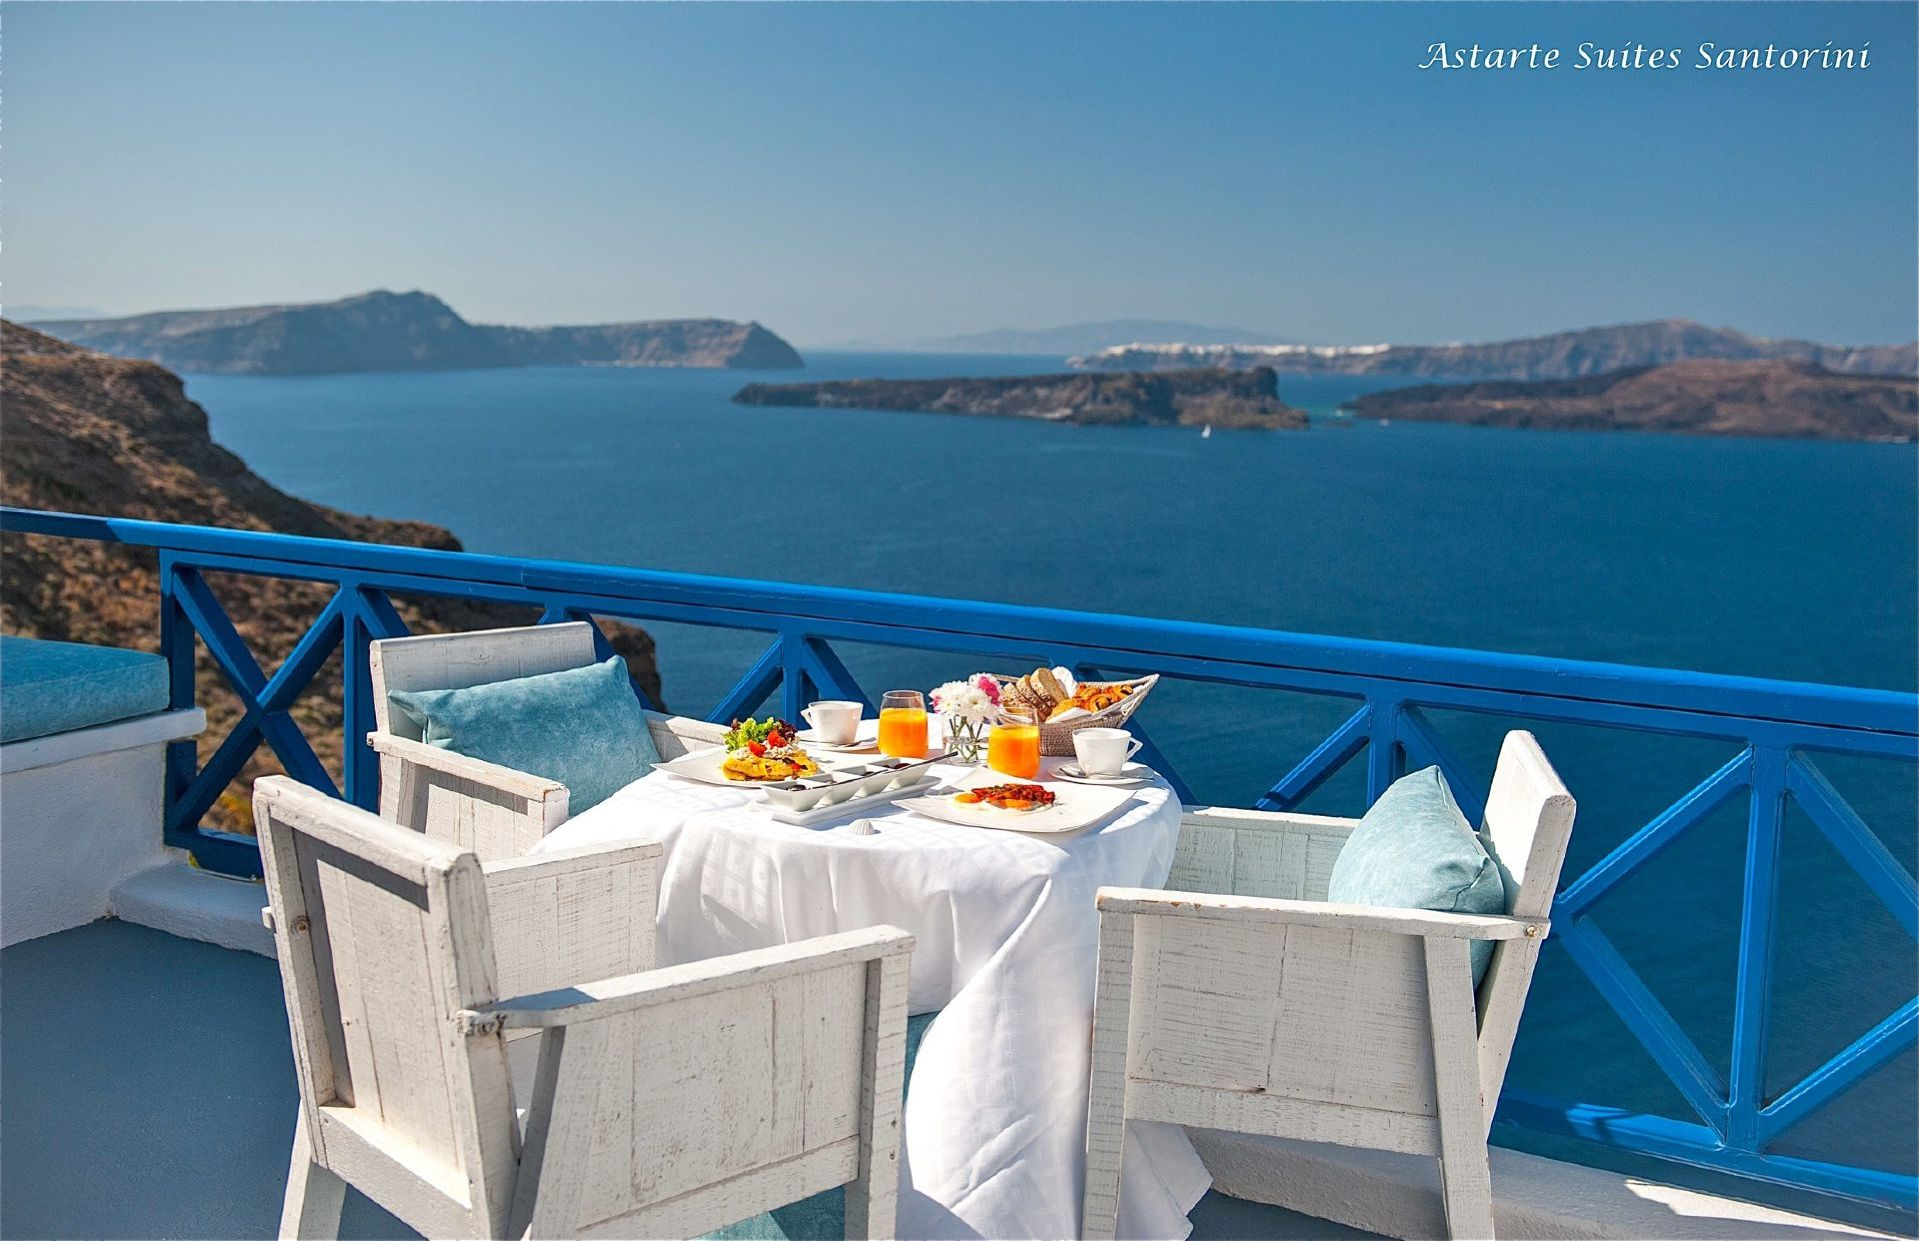 Astarte_Luxury_Suites_in_Santorini_island_Greece.jpeg